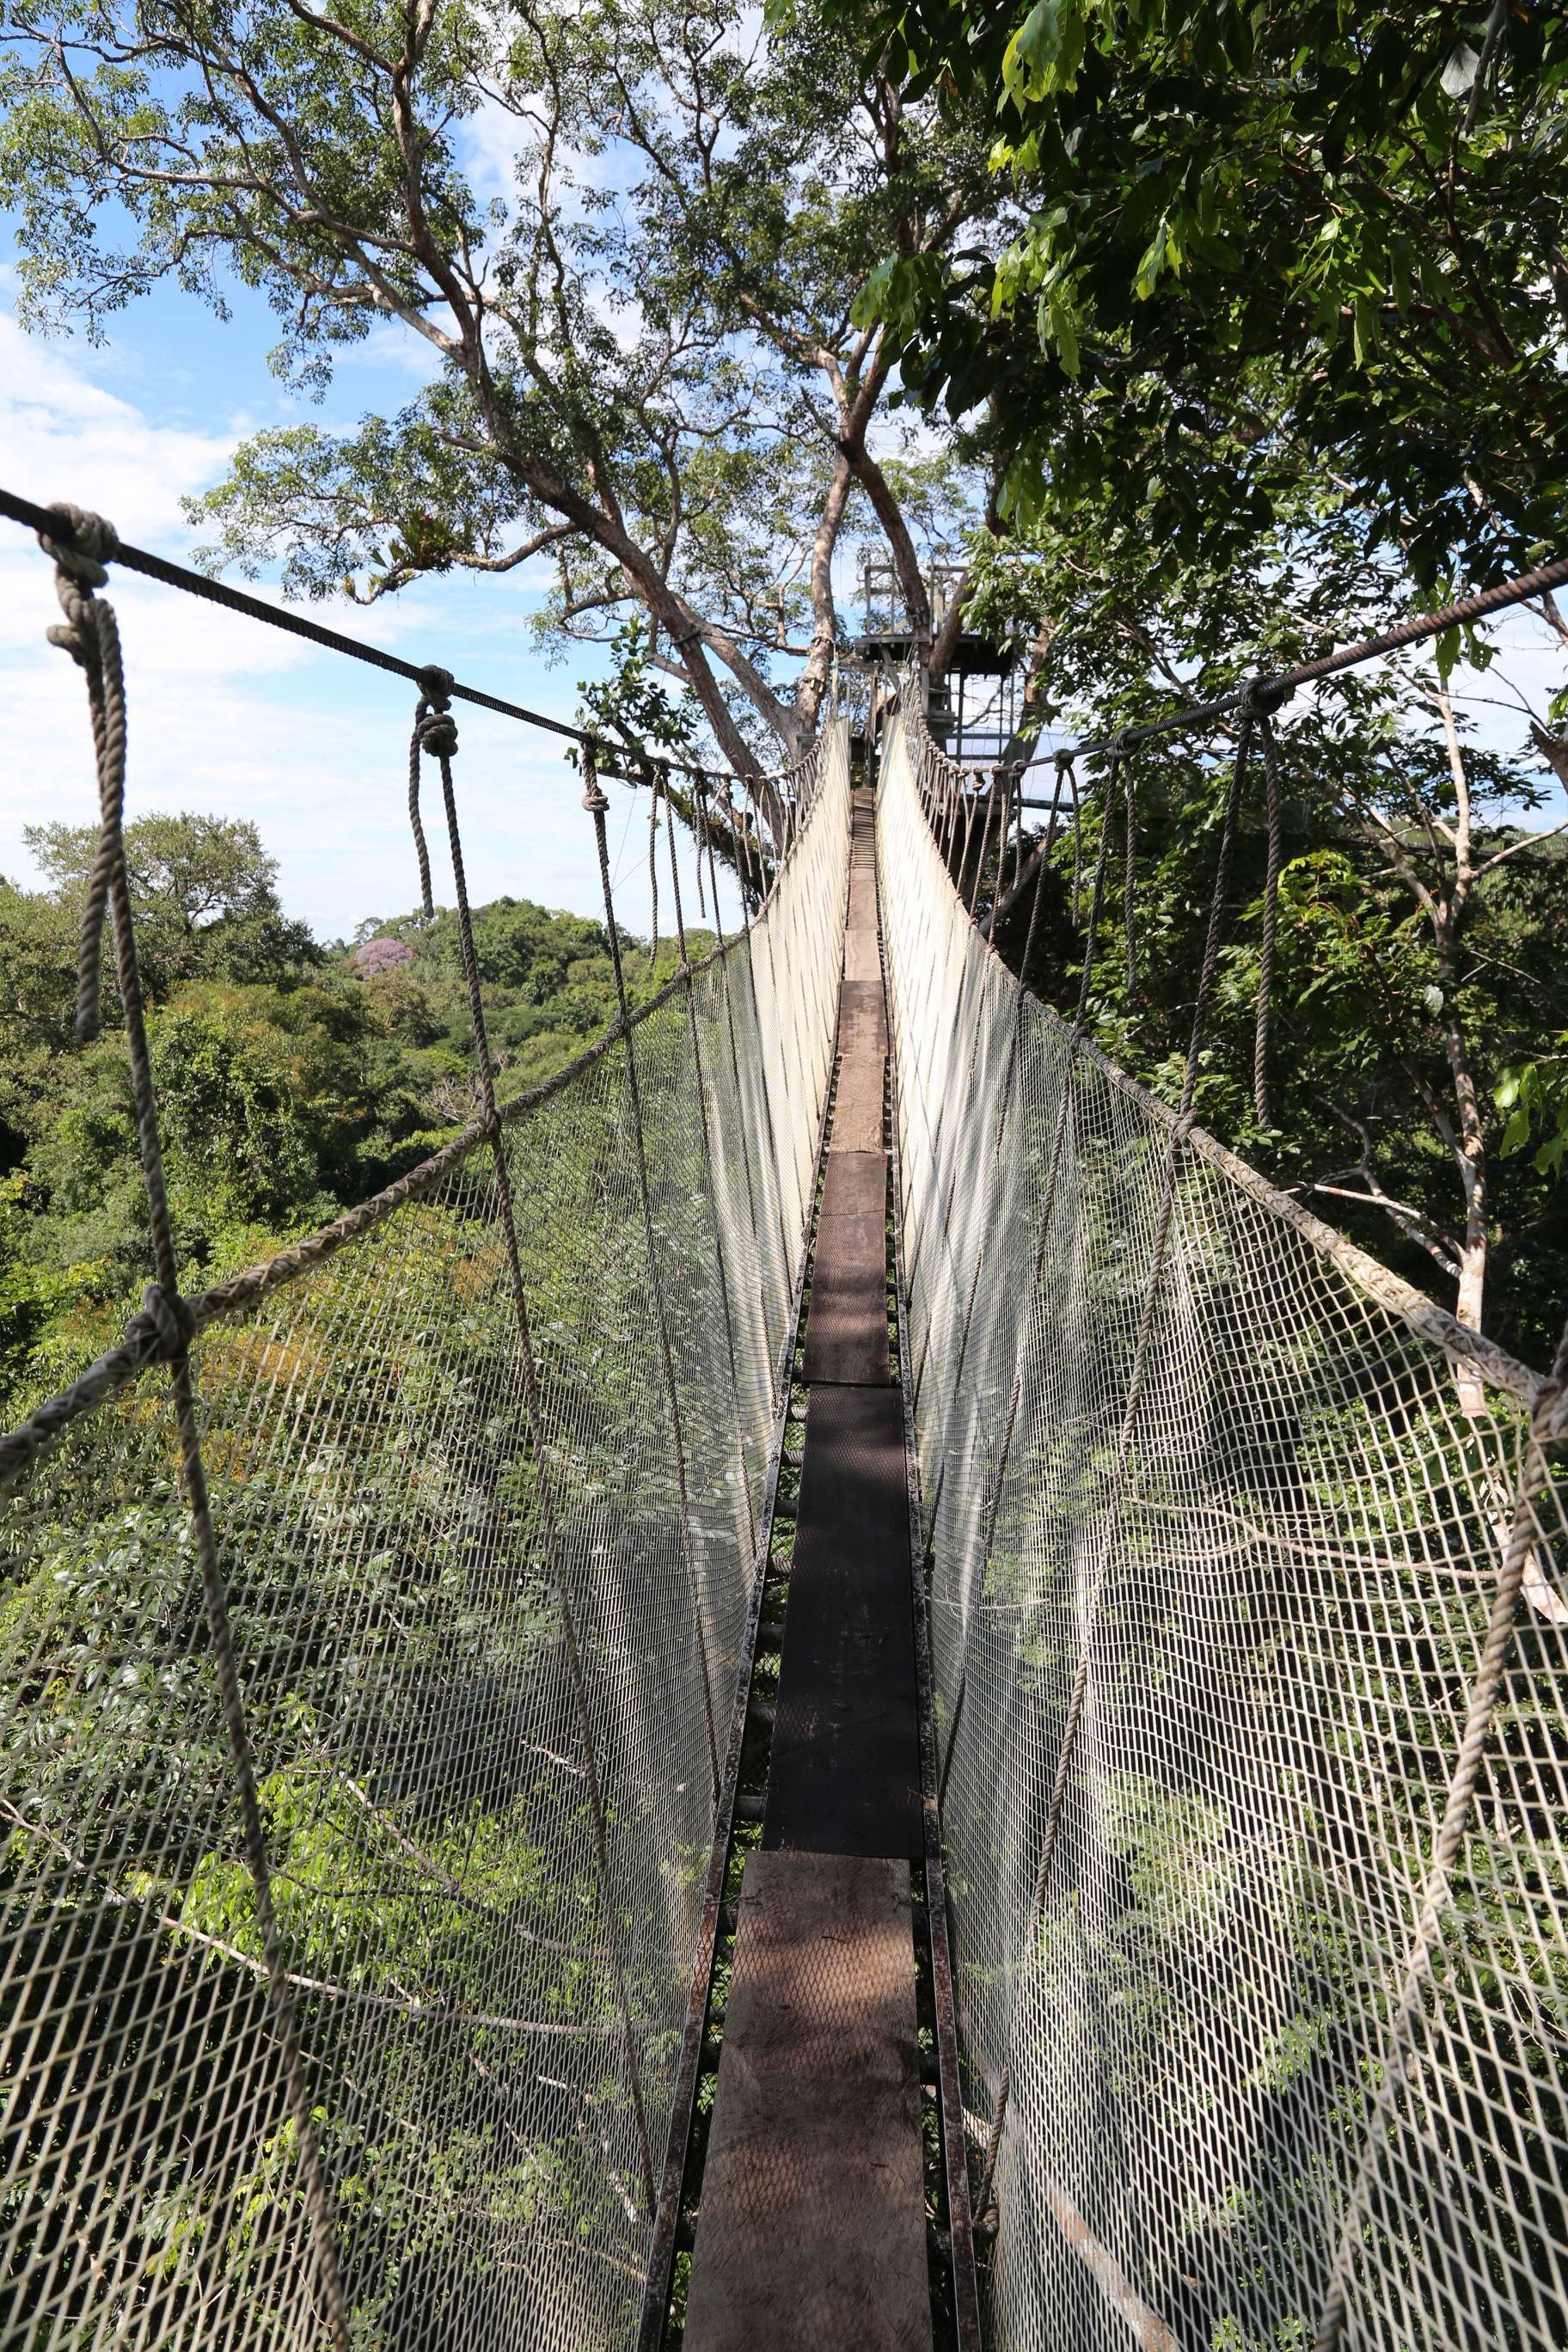 No one hurries along the canopy walkway, mostly because the views are so spectacular.